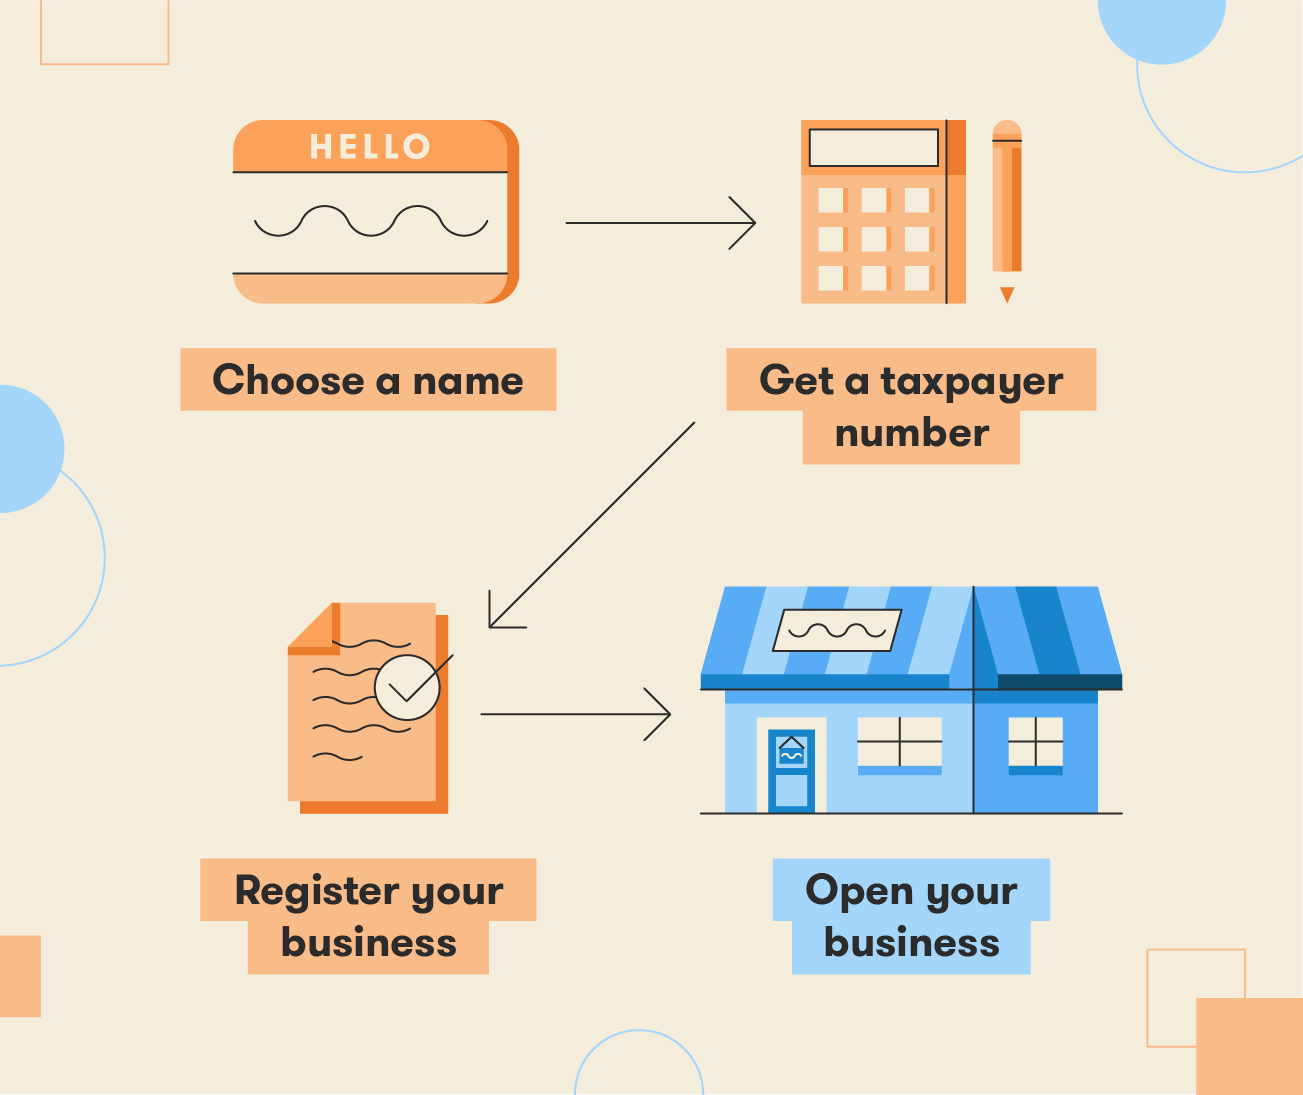 Illustration of the steps to register a business: Choose a name, get a taxpayer number, register your business, and open your business.